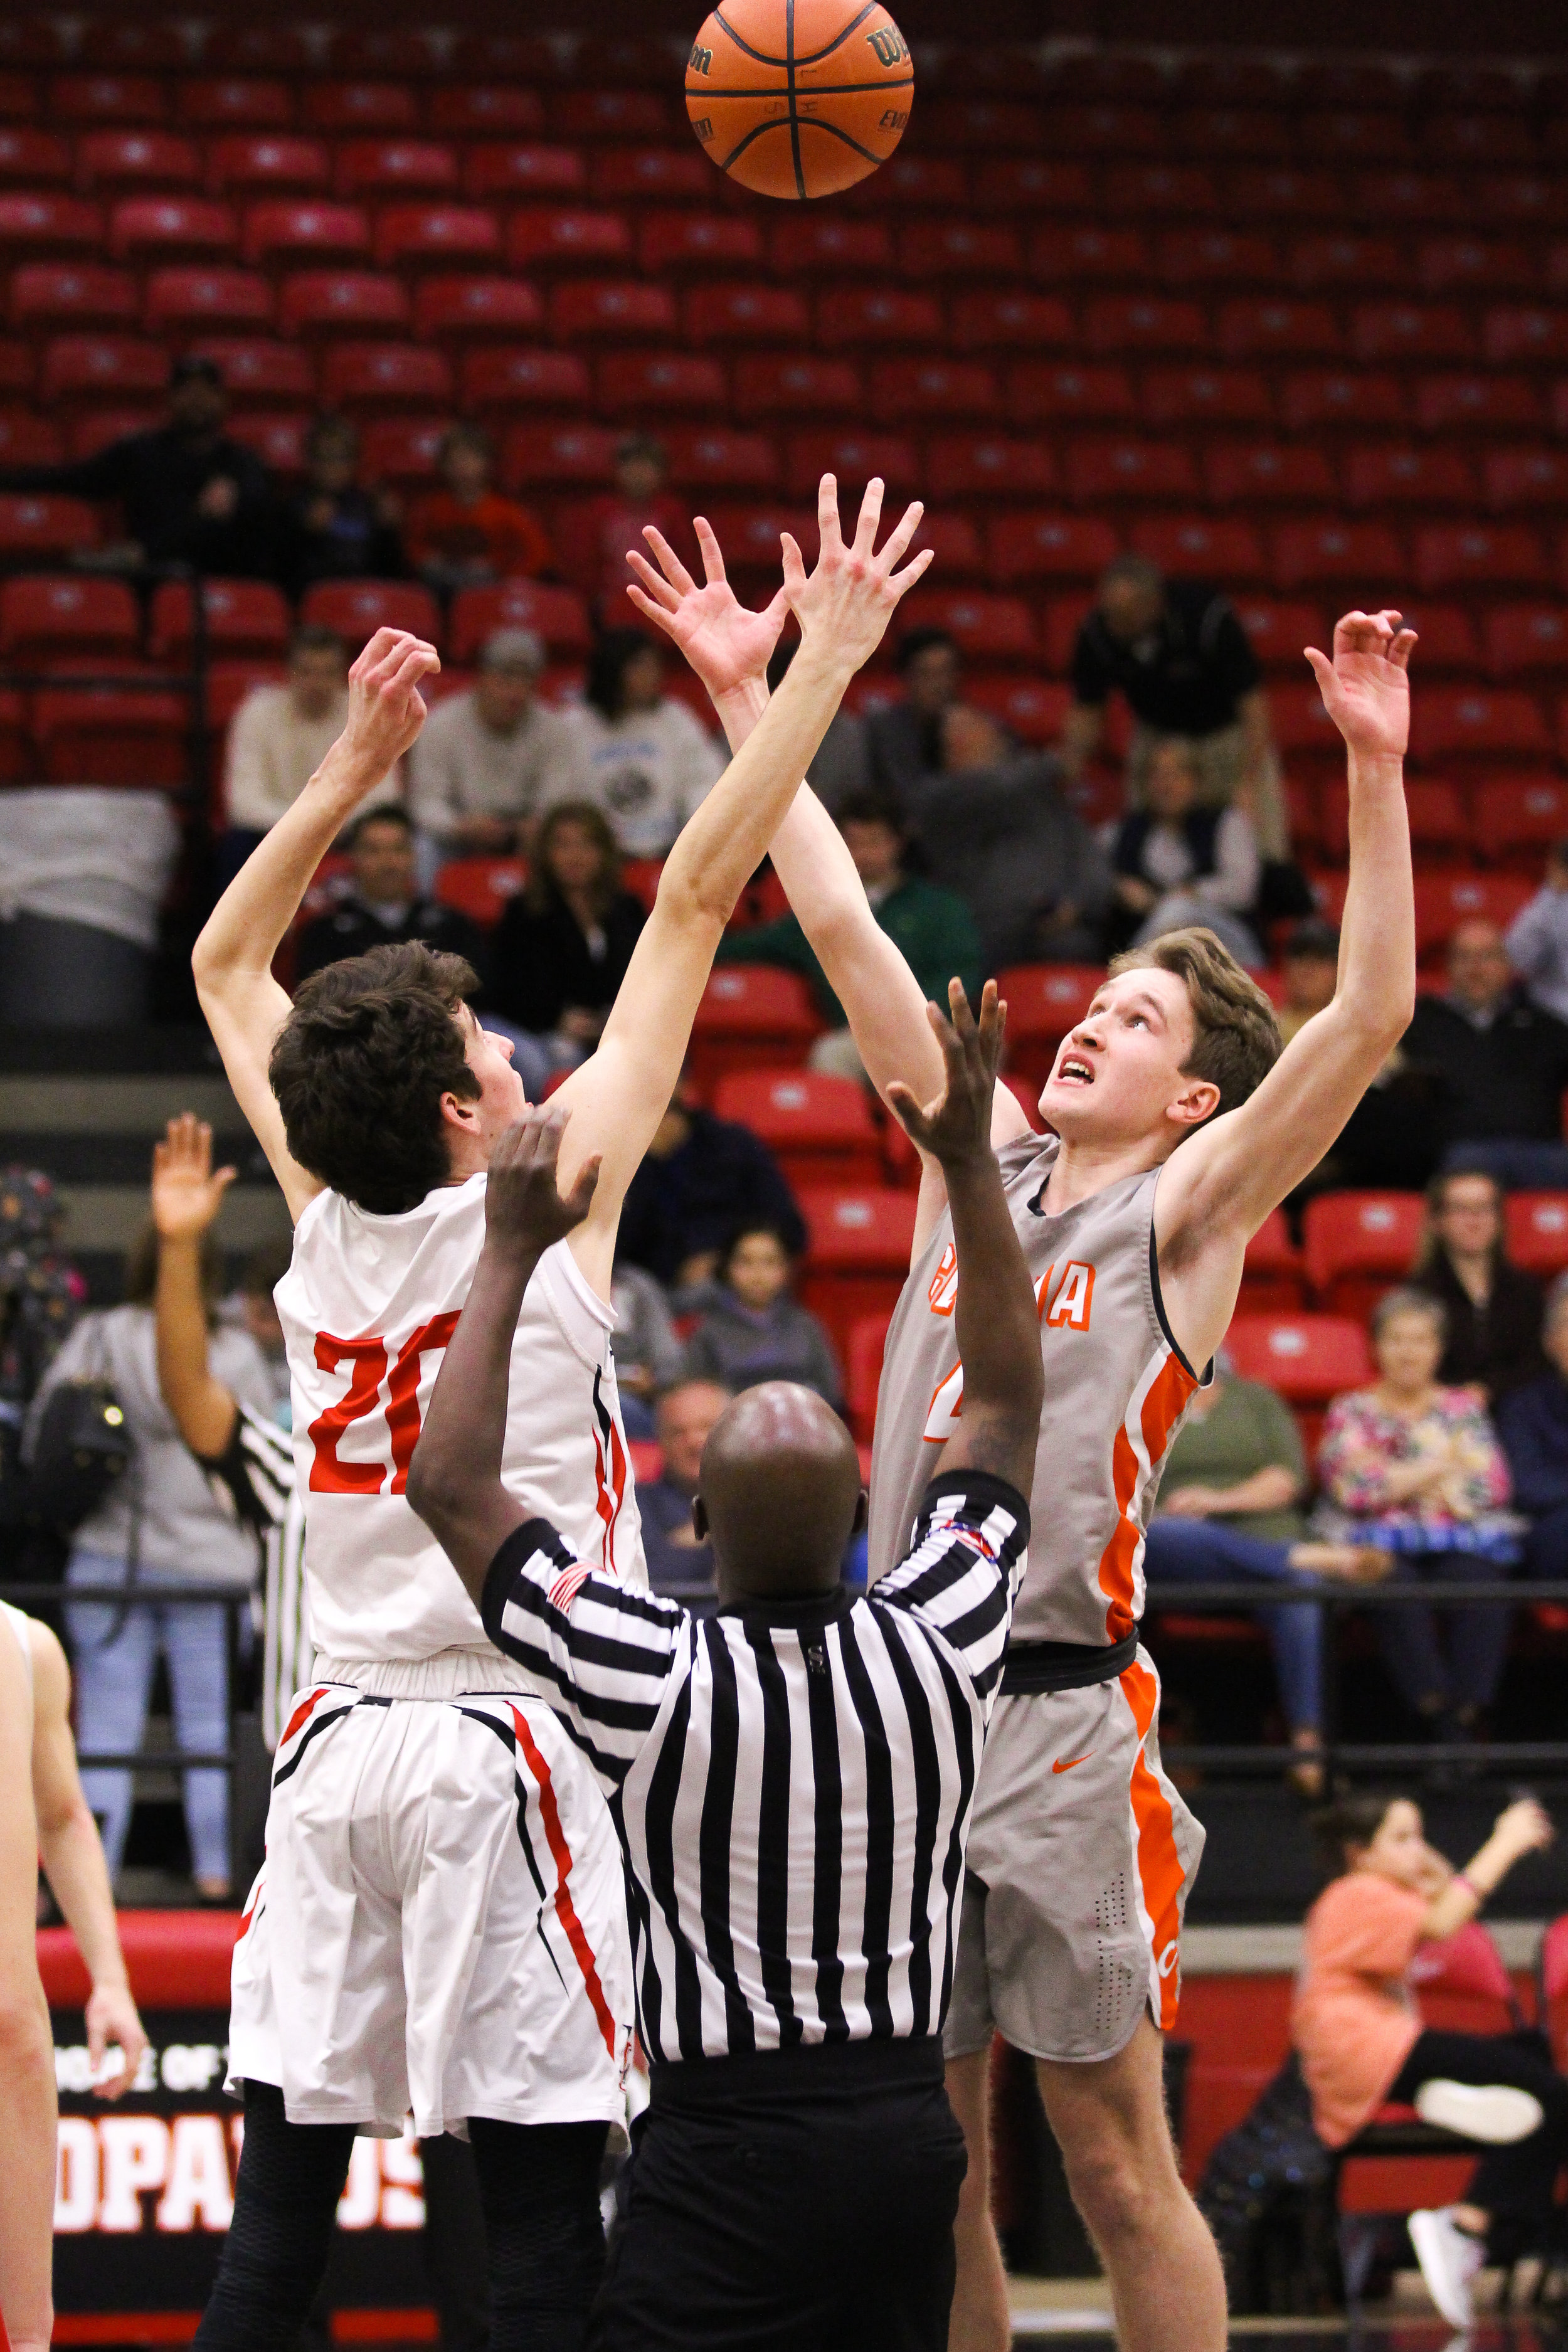 2 - Pete Peabody (20) elevates in attempts to win the ball in the tip off at the start of the game..jpg